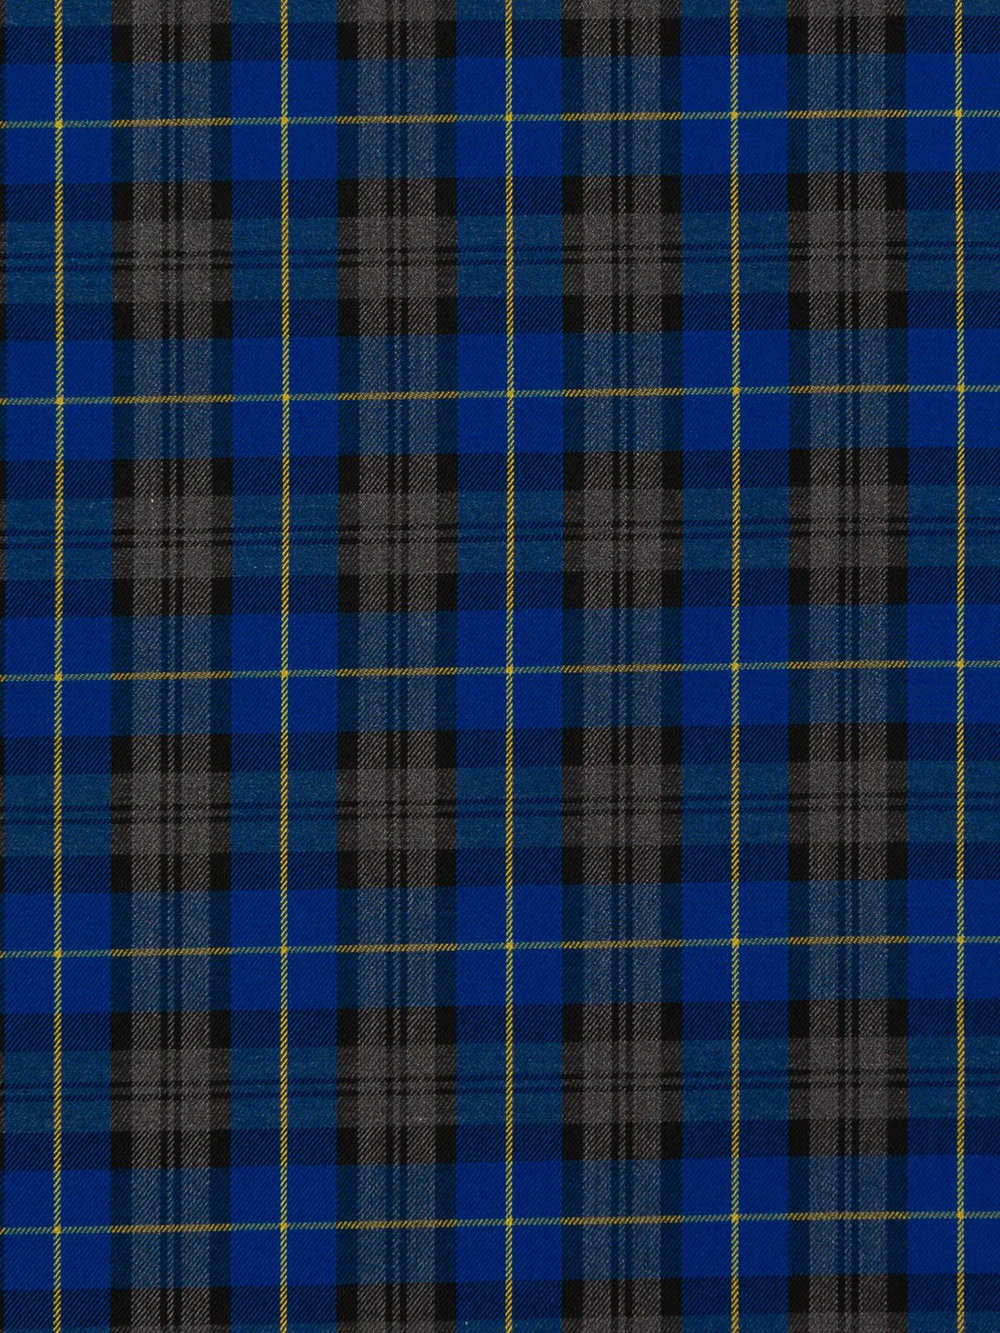 Blue and Black Check